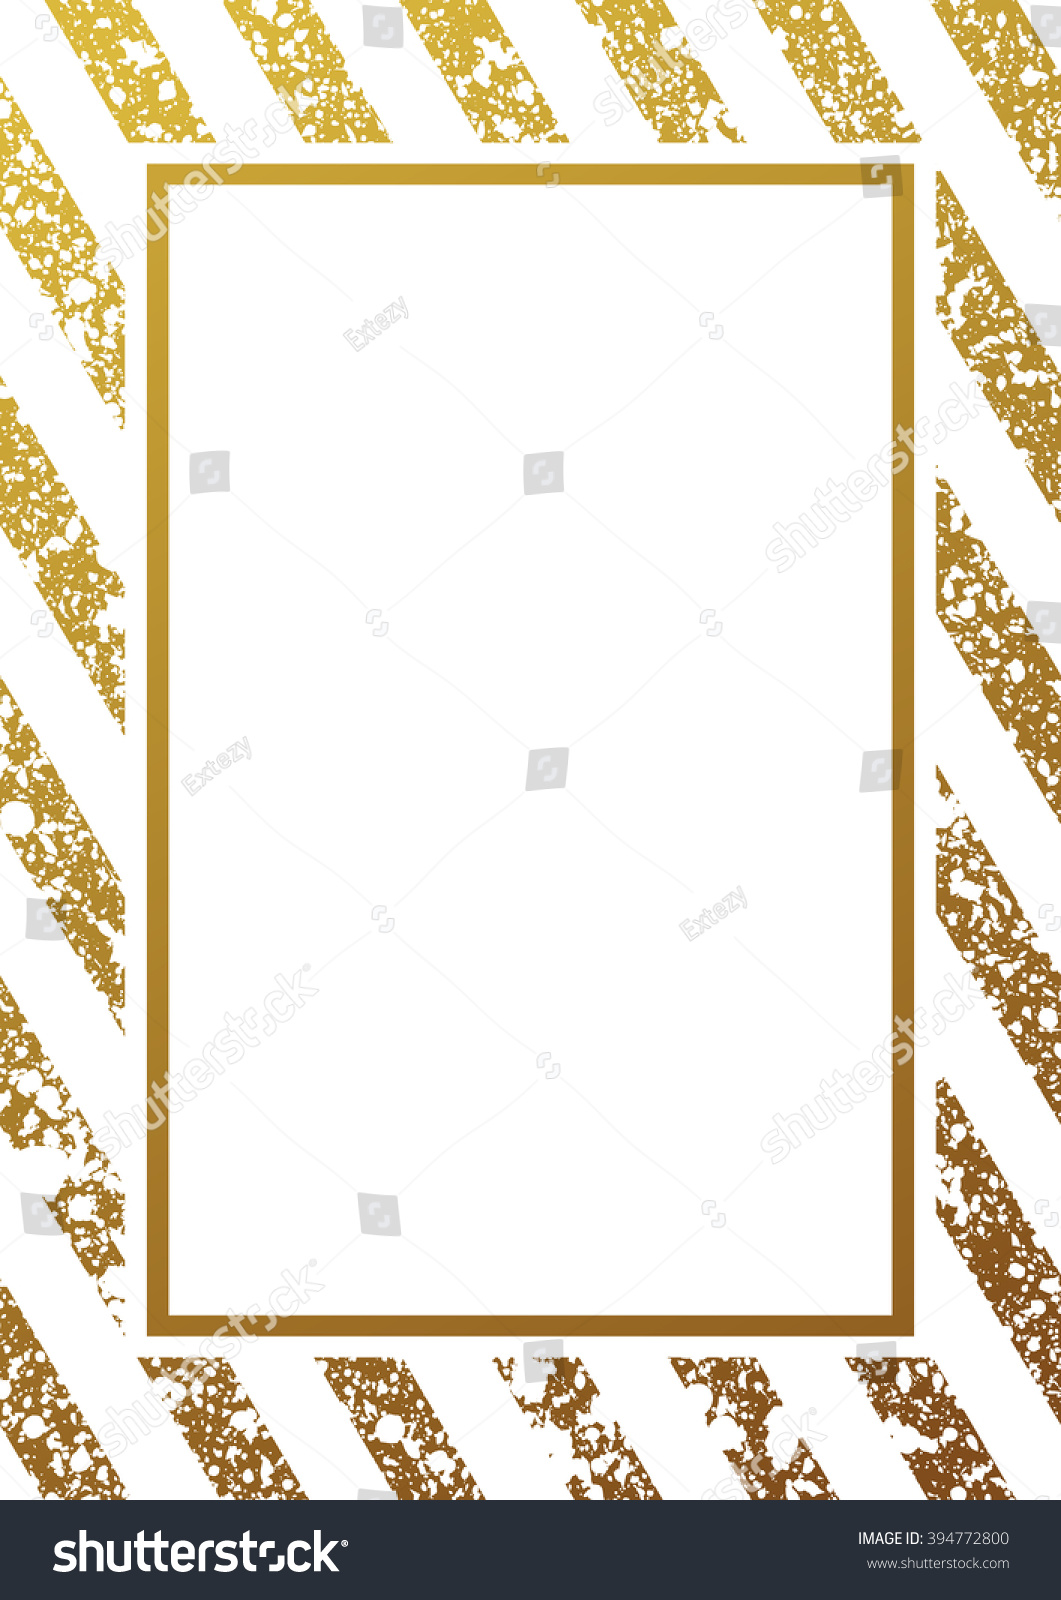 Border frame with black and yellow stripe on white background - Border Frame With Black And Yellow Stripe On White Background Gold Glitter Background Border And Download